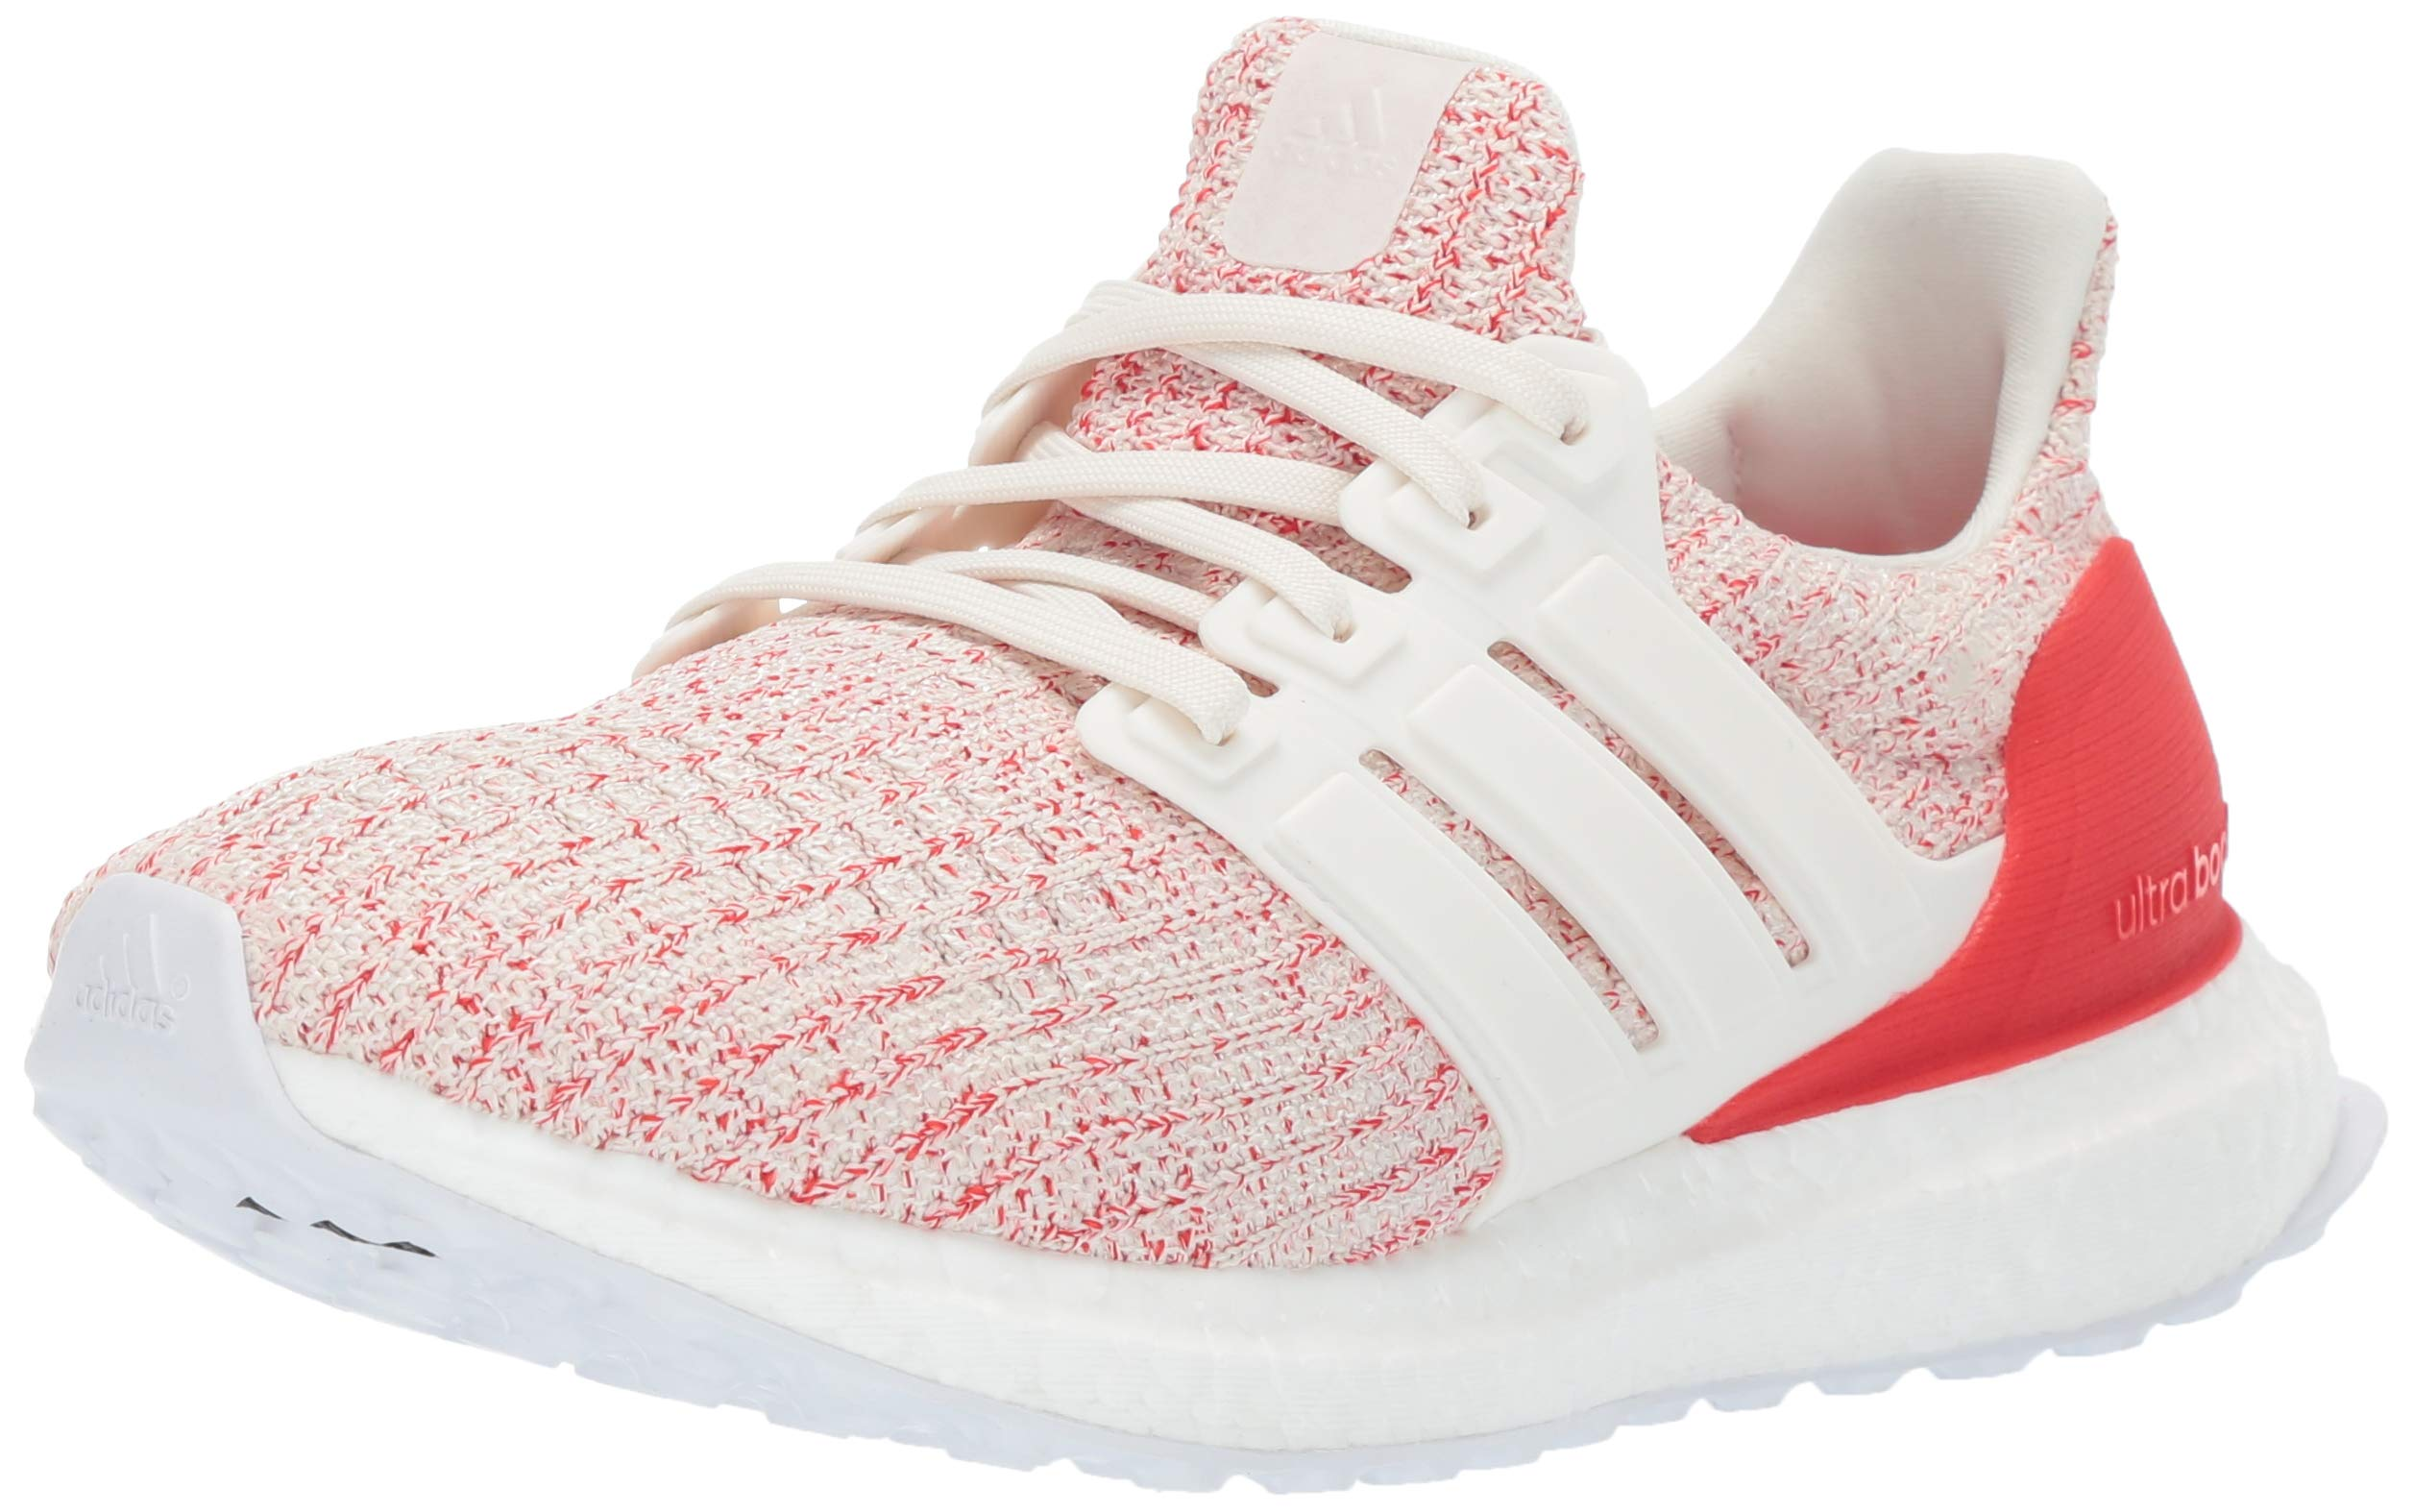 adidas Unisex Ultraboost, Chalk White/Active red, 5 M US Big Kid by adidas